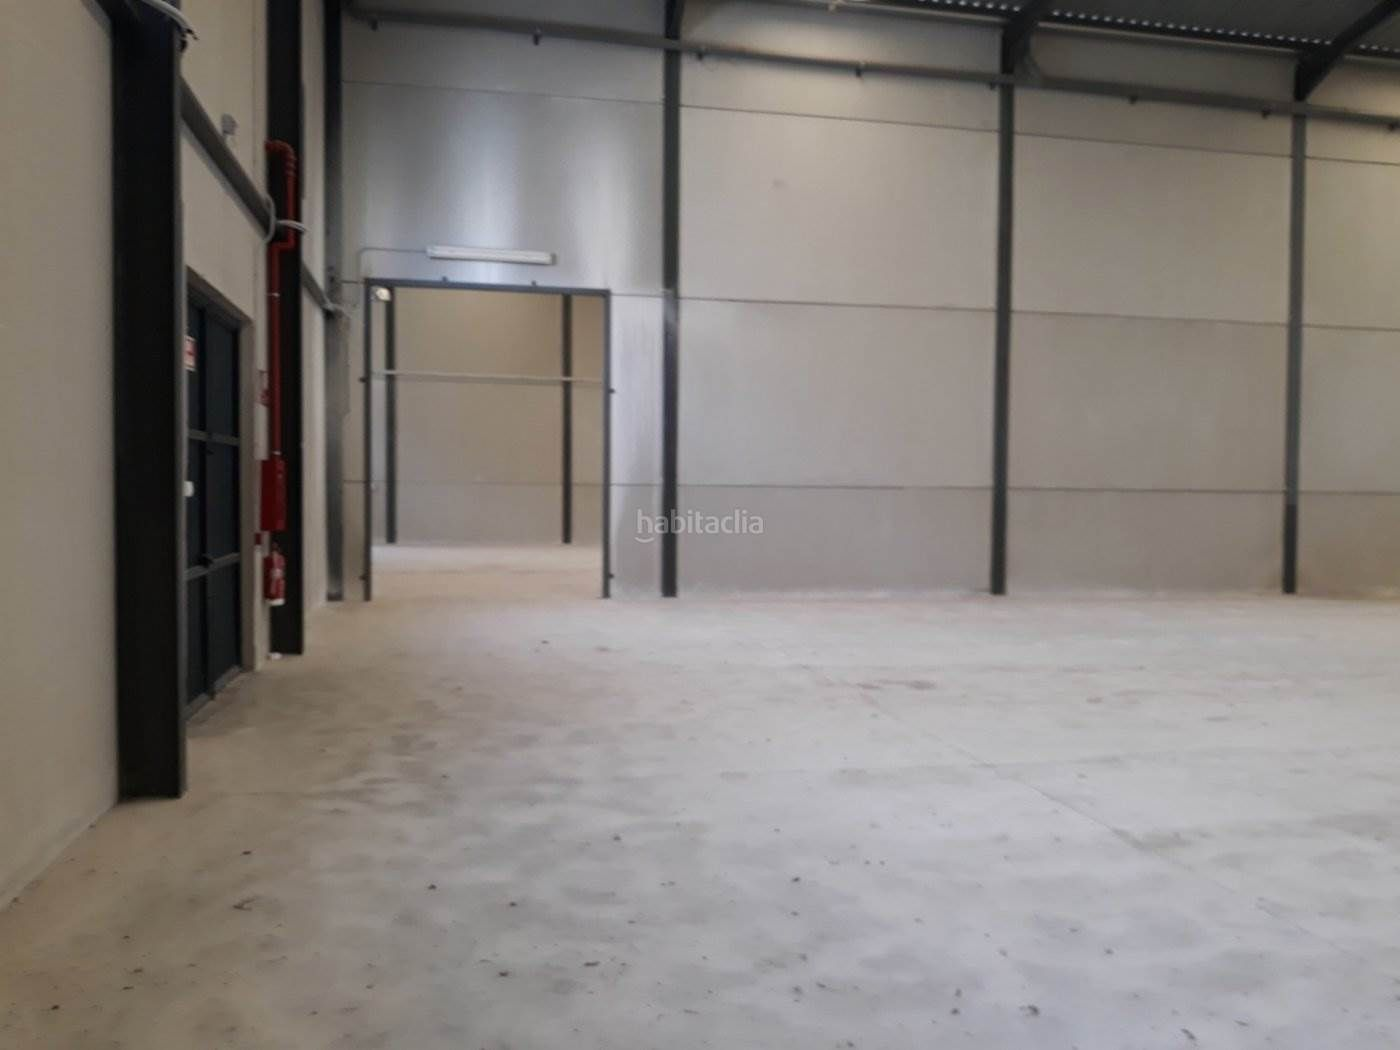 Rent Industrial building in Dolores. Se alquila nave a estrenar en dolores (alicante)